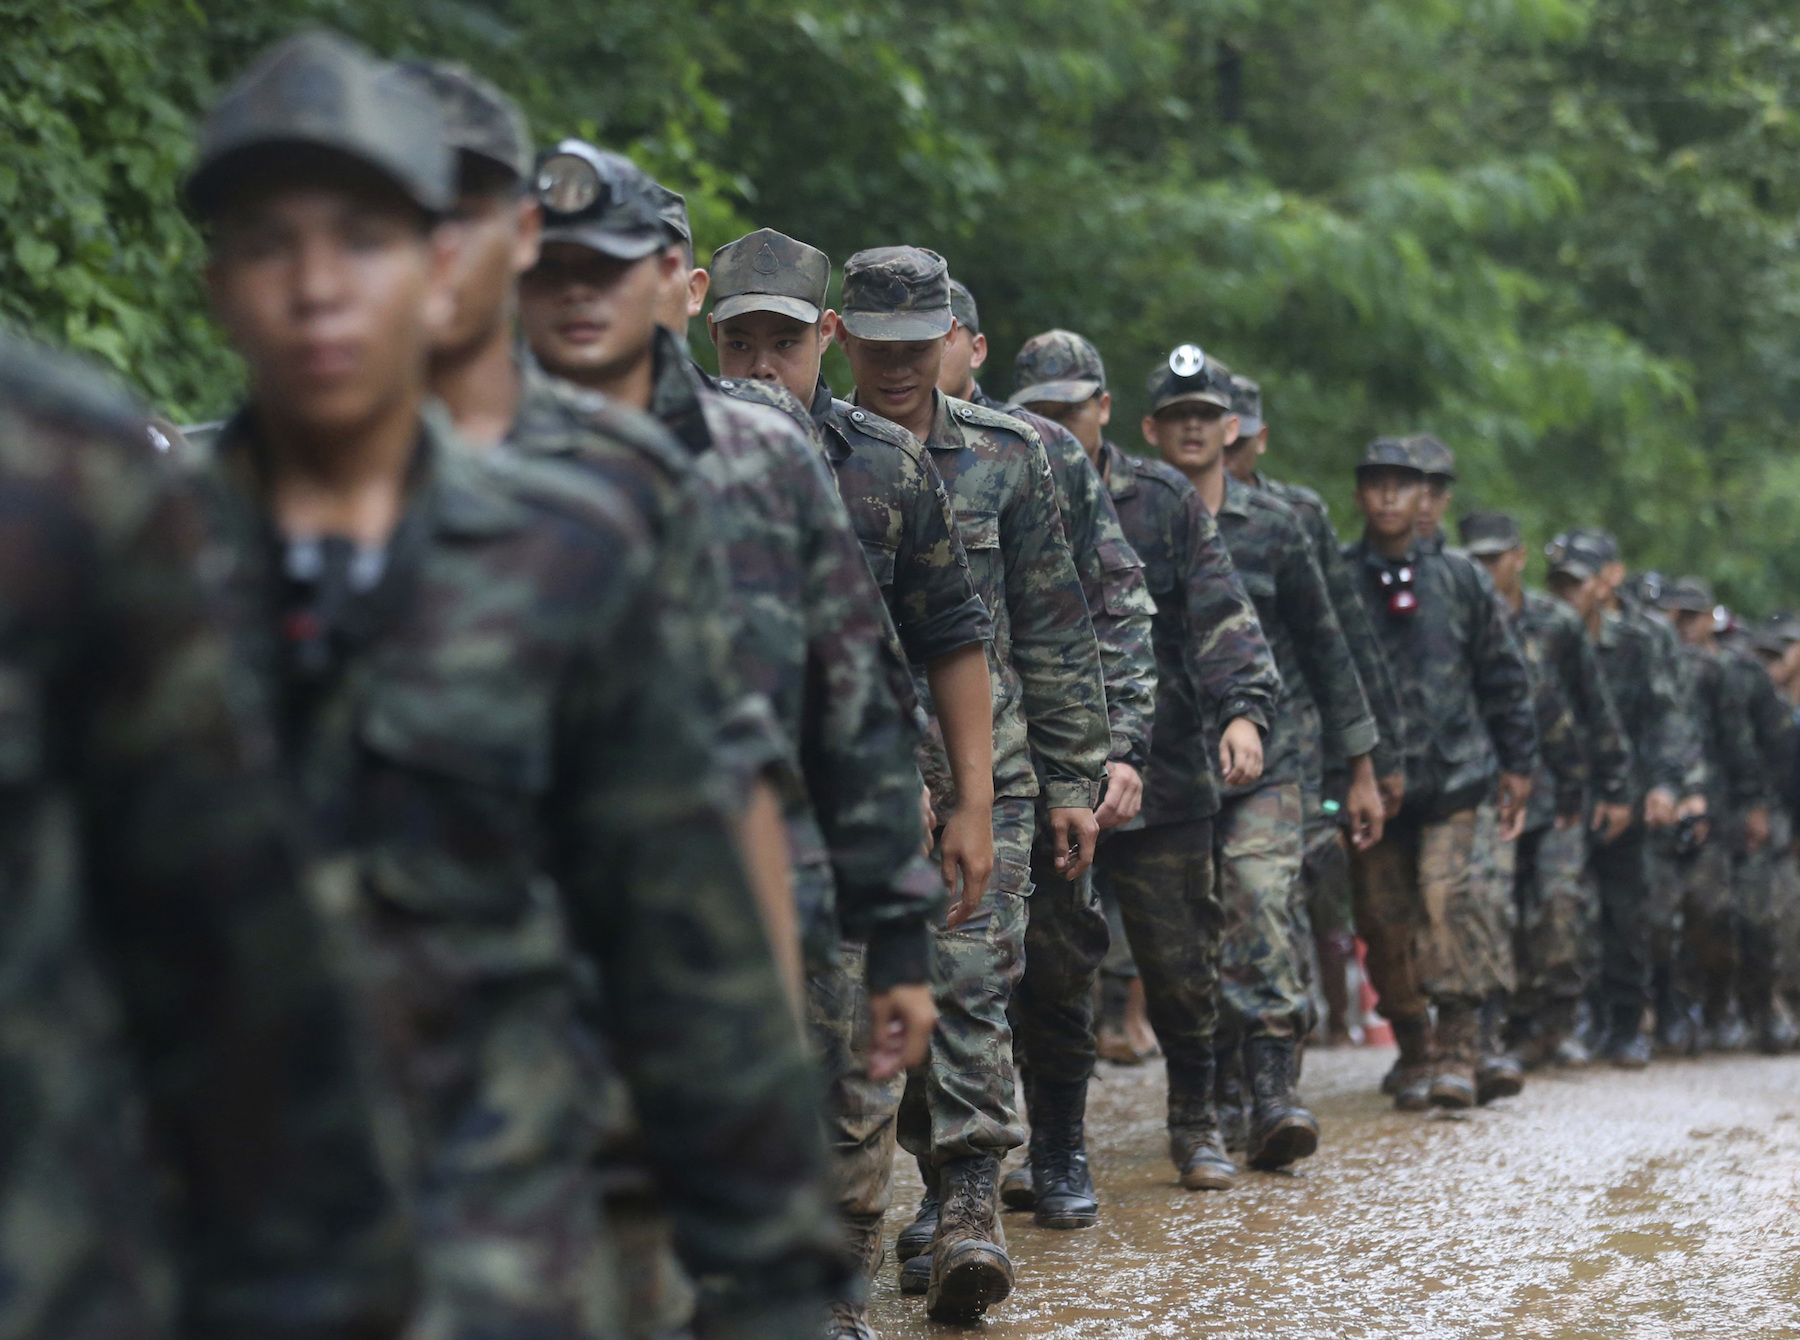 <div class='meta'><div class='origin-logo' data-origin='AP'></div><span class='caption-text' data-credit='AP Photo/Sakchai Lalit'>Thai soldiers line up to the cave area as they continue the search for a young soccer team and their coach believed to be missing in a large cave, Wednesday, June 27, 2018.</span></div>